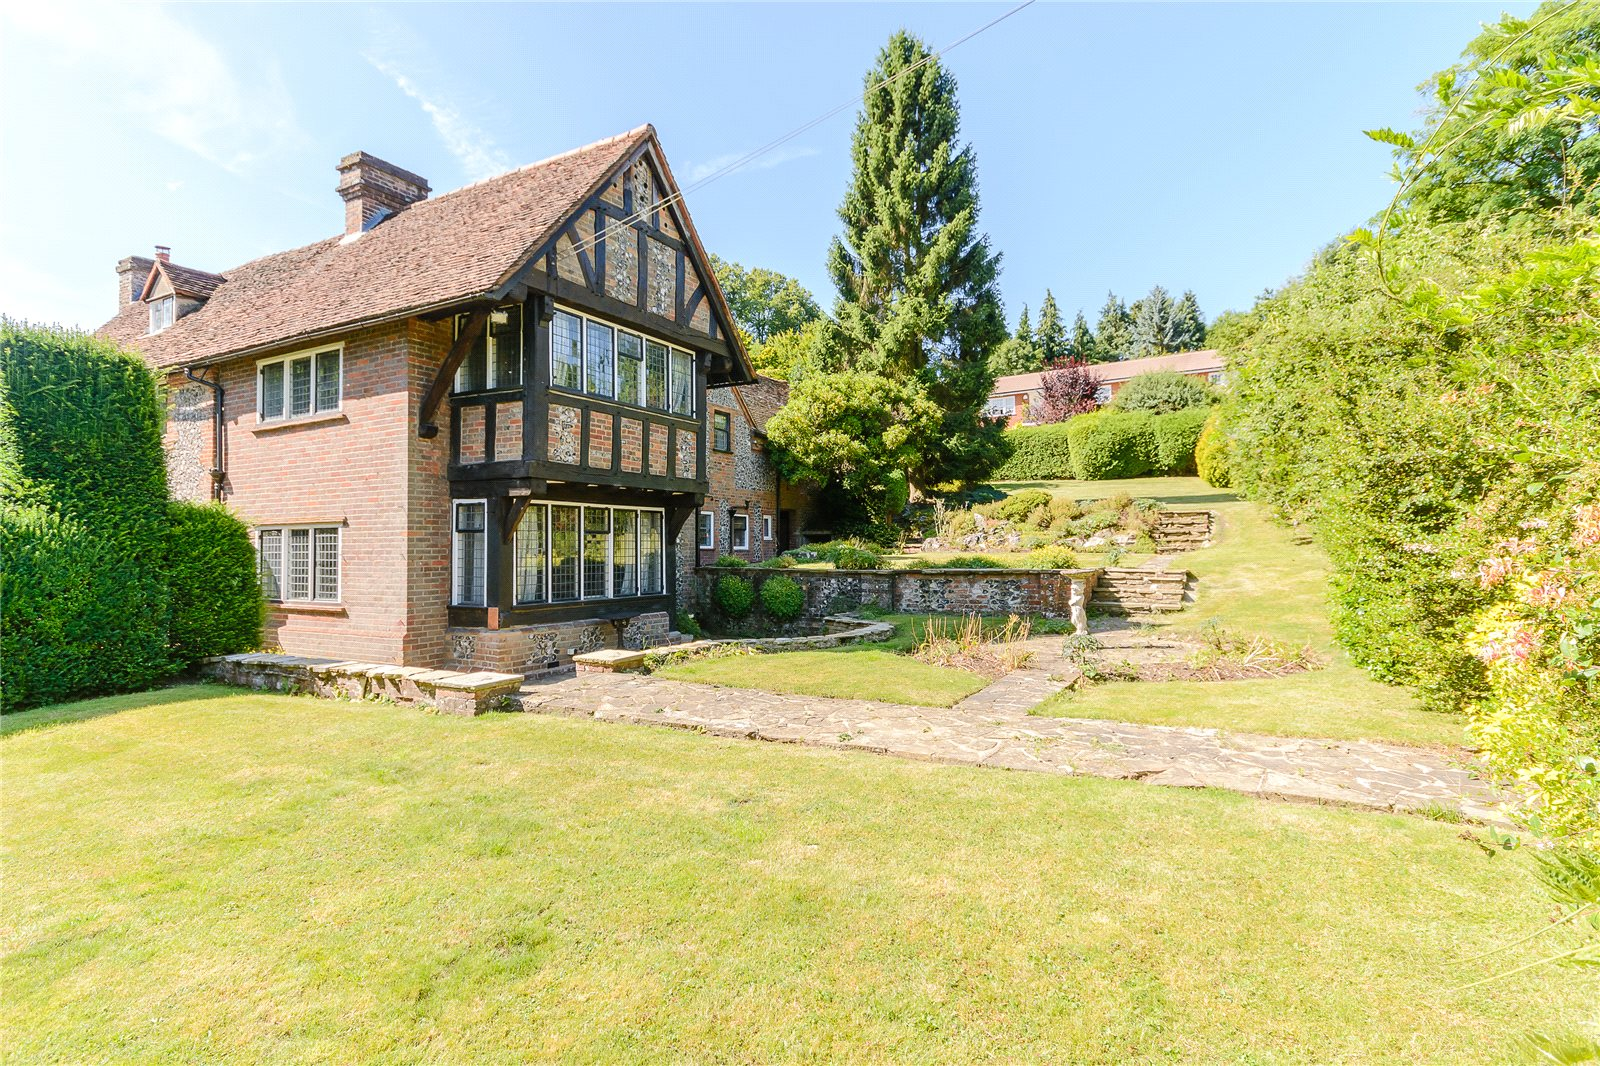 Additional photo for property listing at Claydon Lane, Chalfont St Peter, Gerrards Cross, Buckinghamshire, SL9 Gerrards Cross, Αγγλια